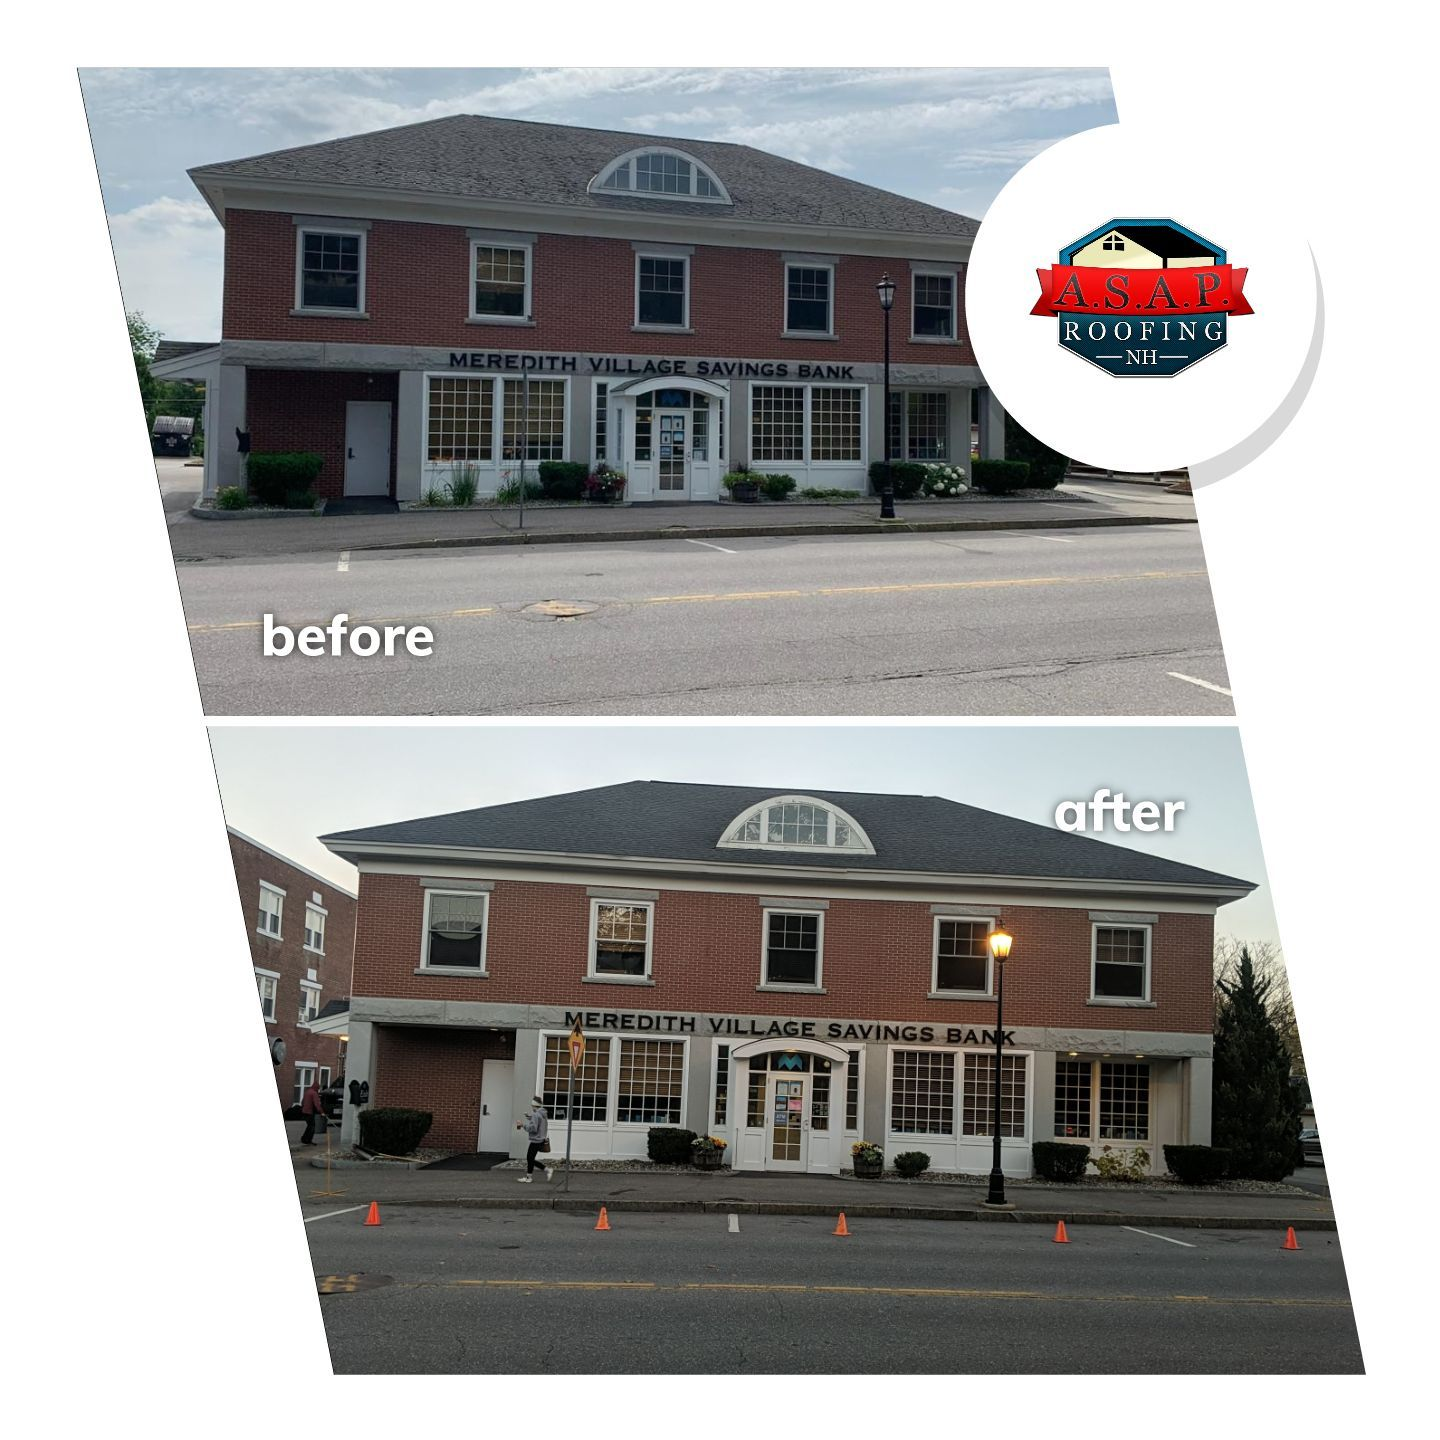 Commercial Roofing, Meredith Savings Bank in Plymouth NH